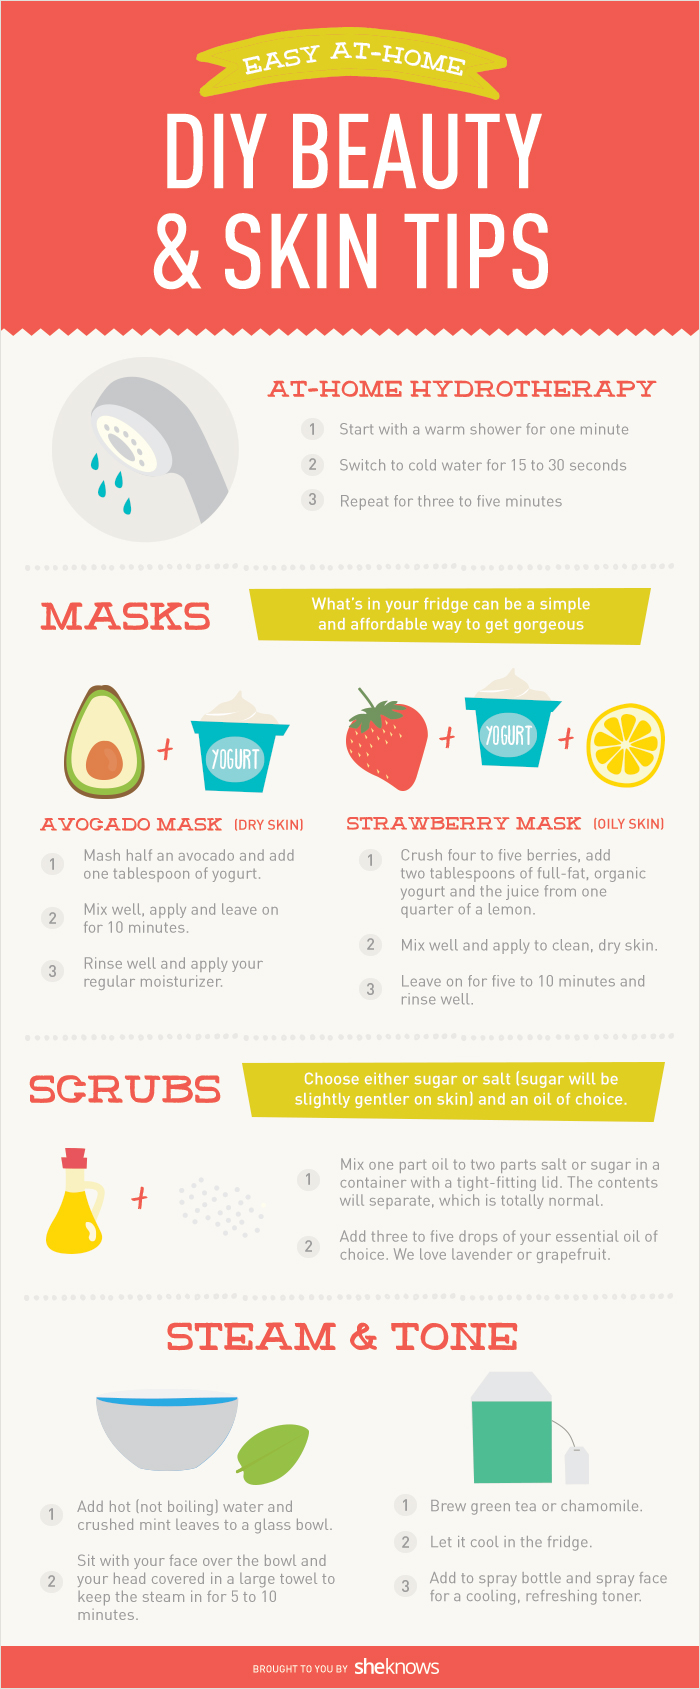 Easy at-home DIY beauty and skin tips